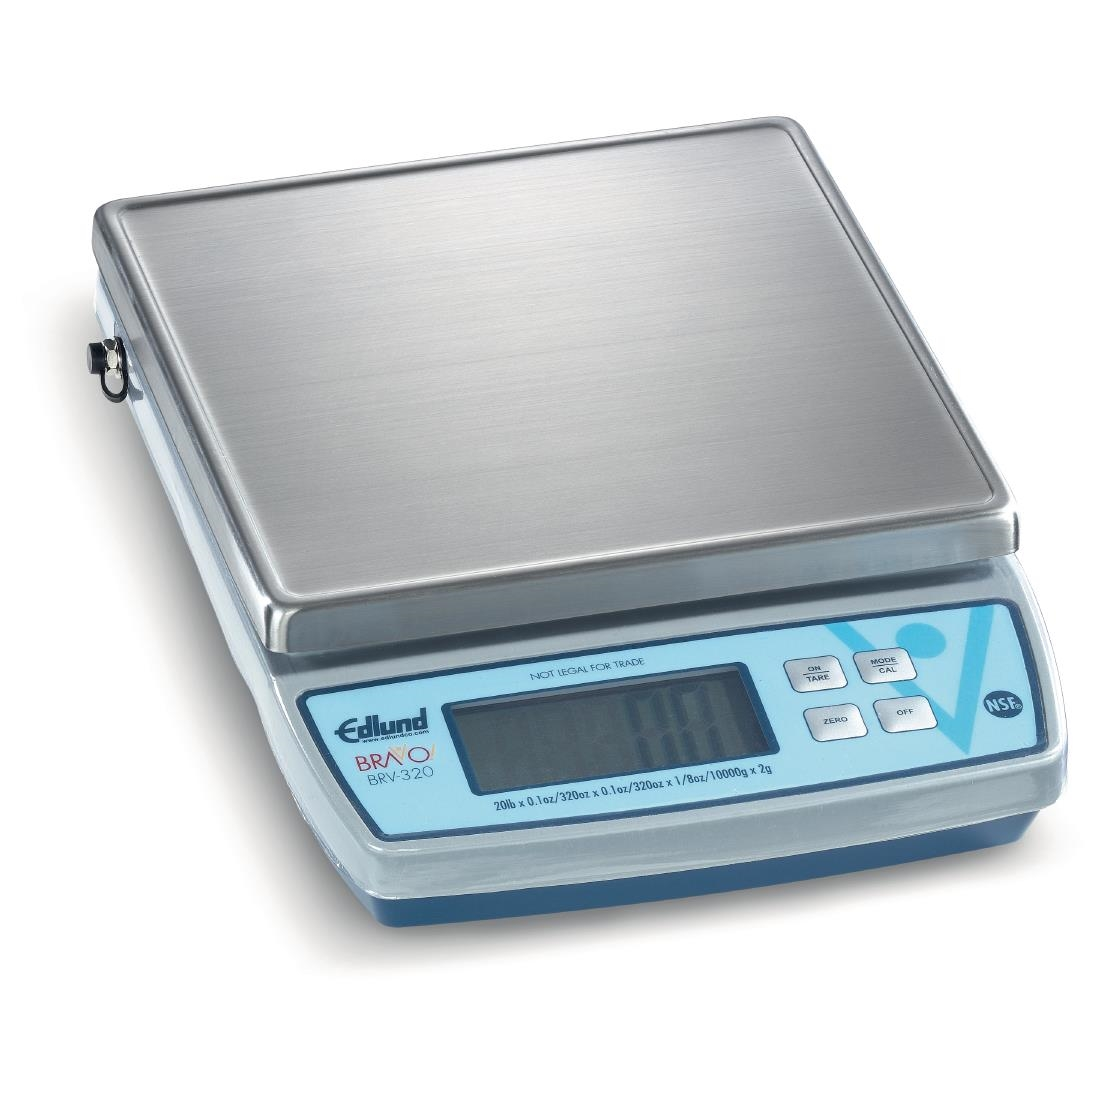 Edlund Bravo 320 Digital Scales with Clearshield Protective Cover 9Kg